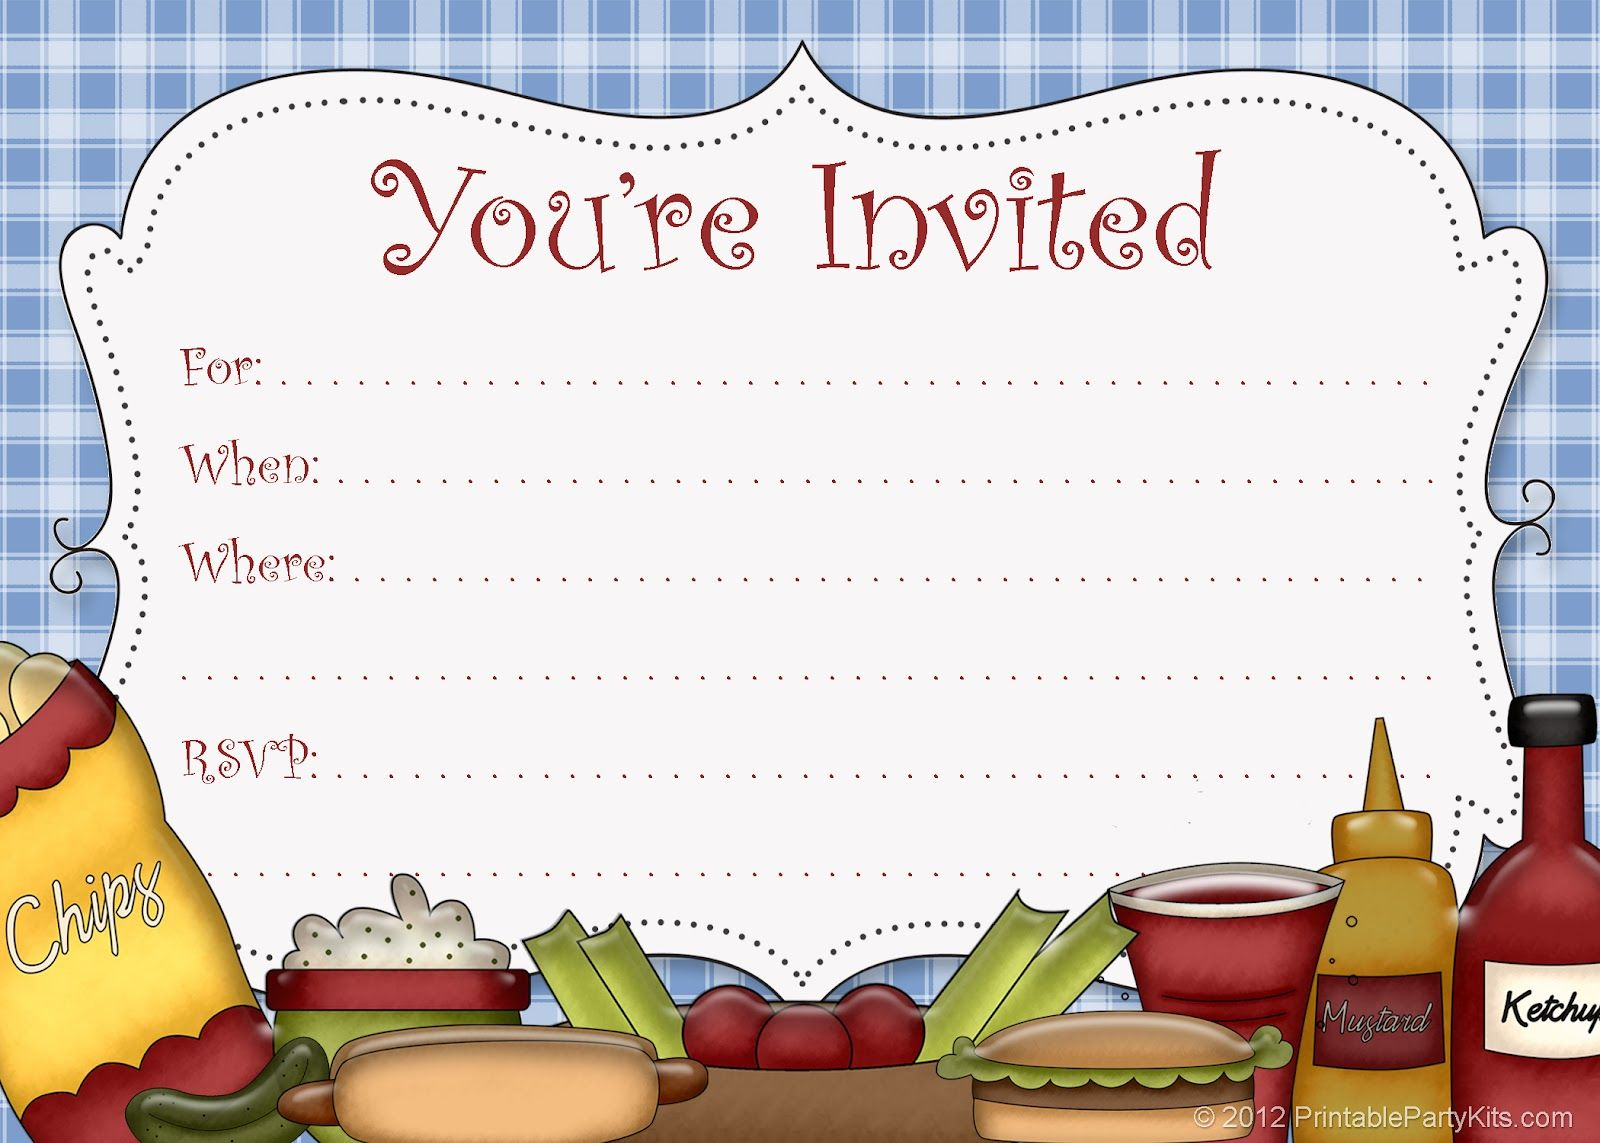 Free Printable Party Invitations Picnic